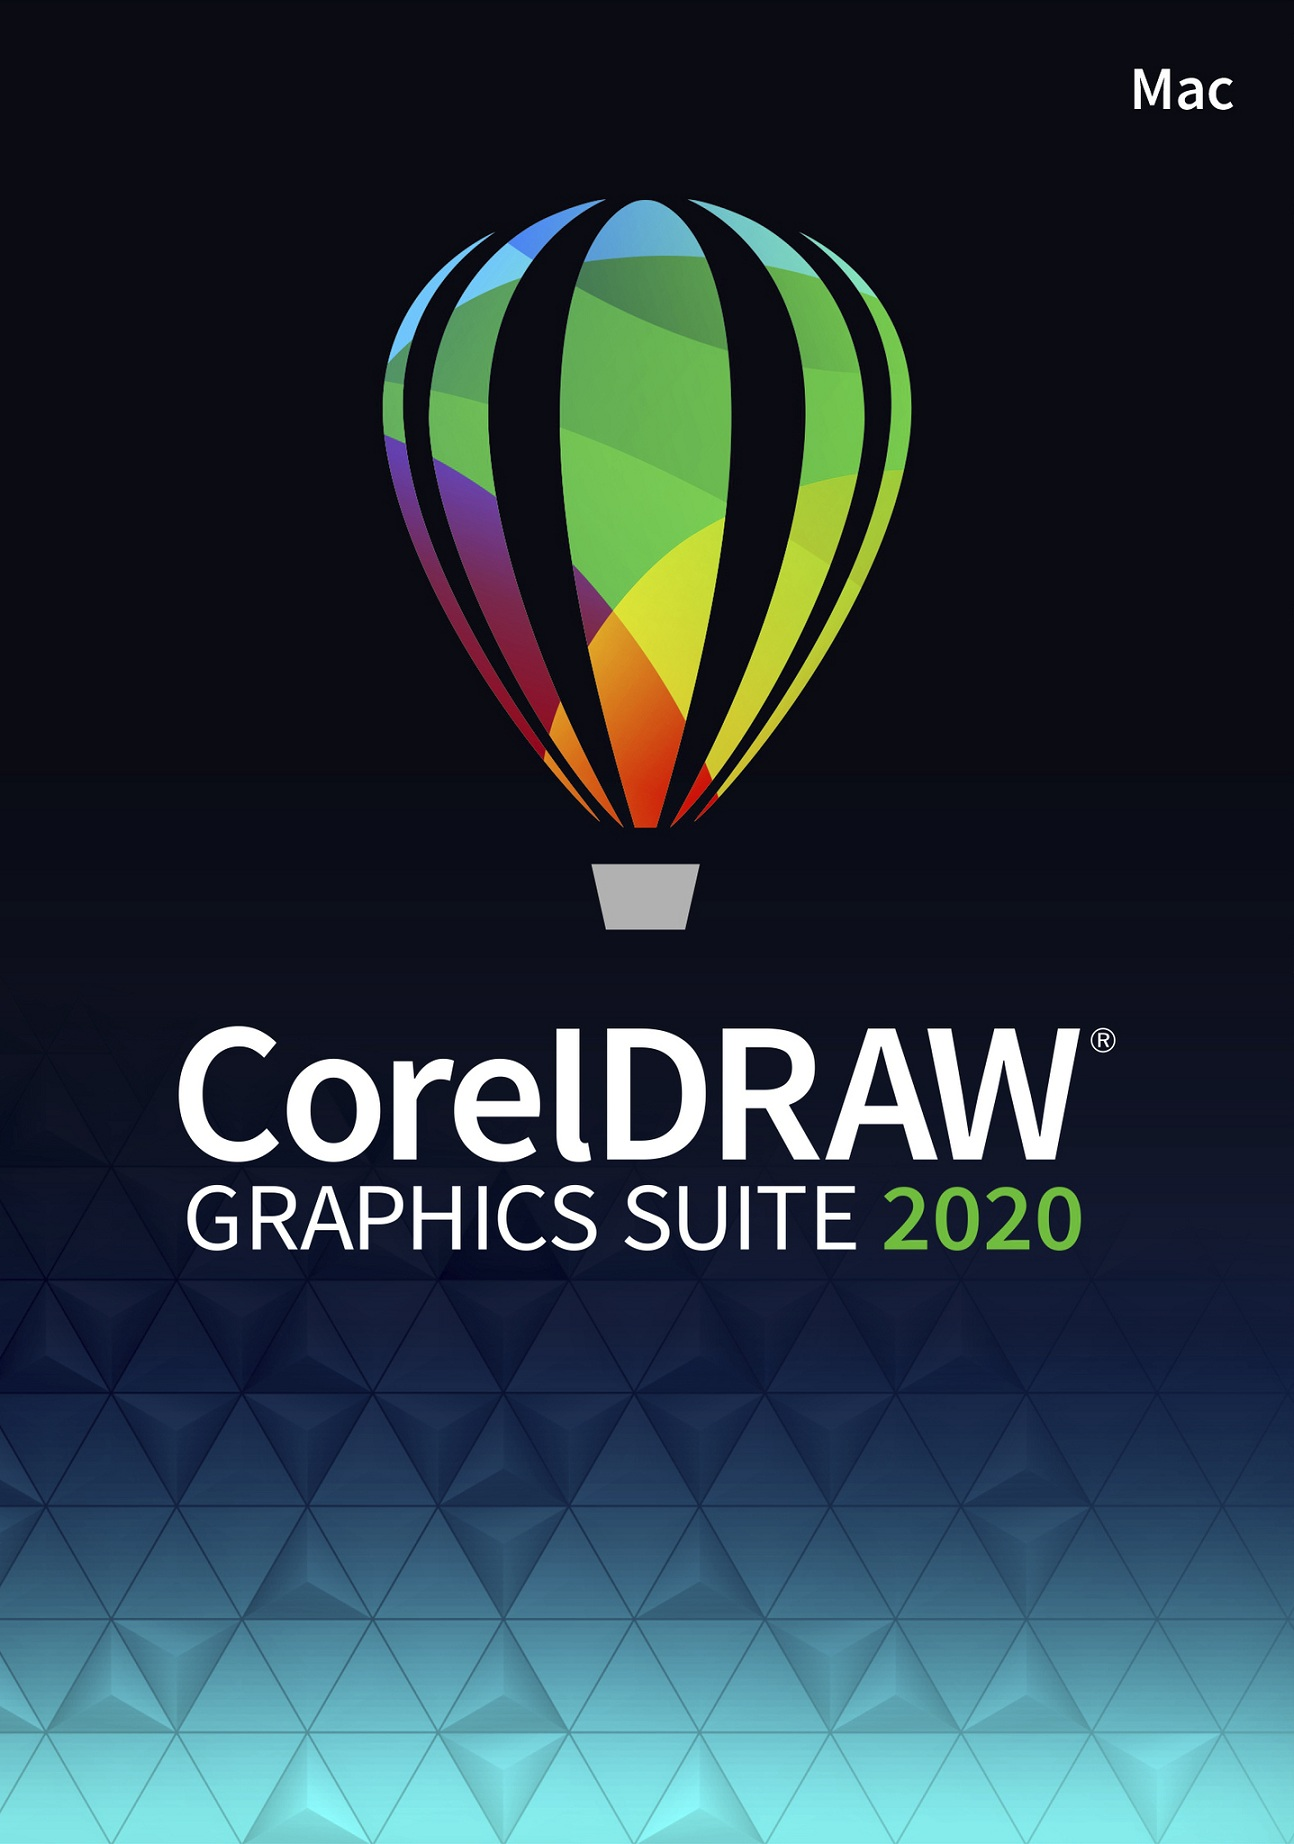 CorelDRAW Graphics Suite 2020 Mac